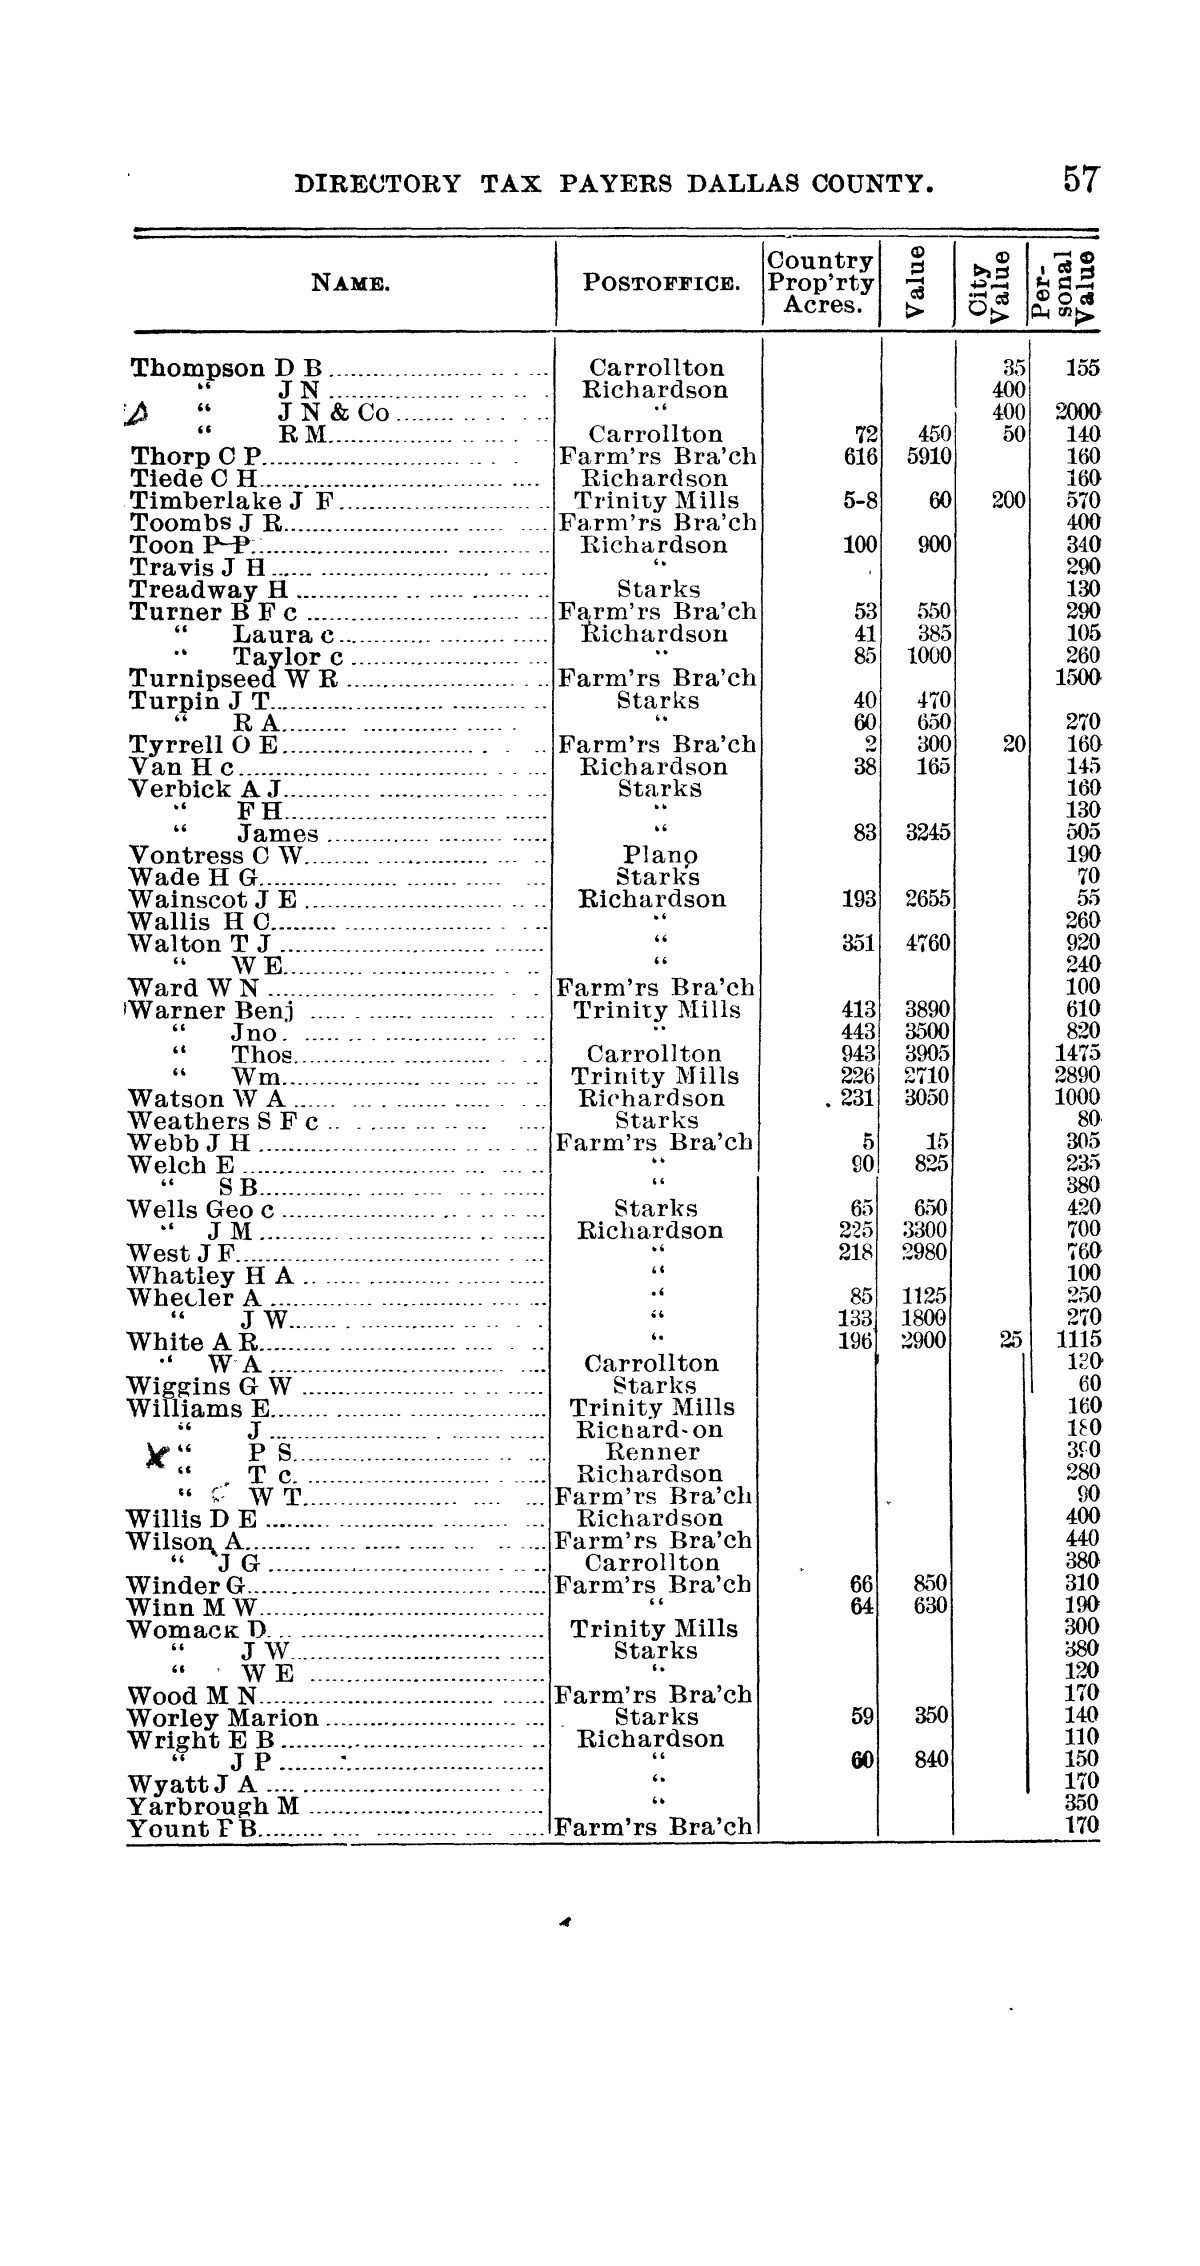 Official directory, taxpayers of Dallas County, Texas                                                                                                      57